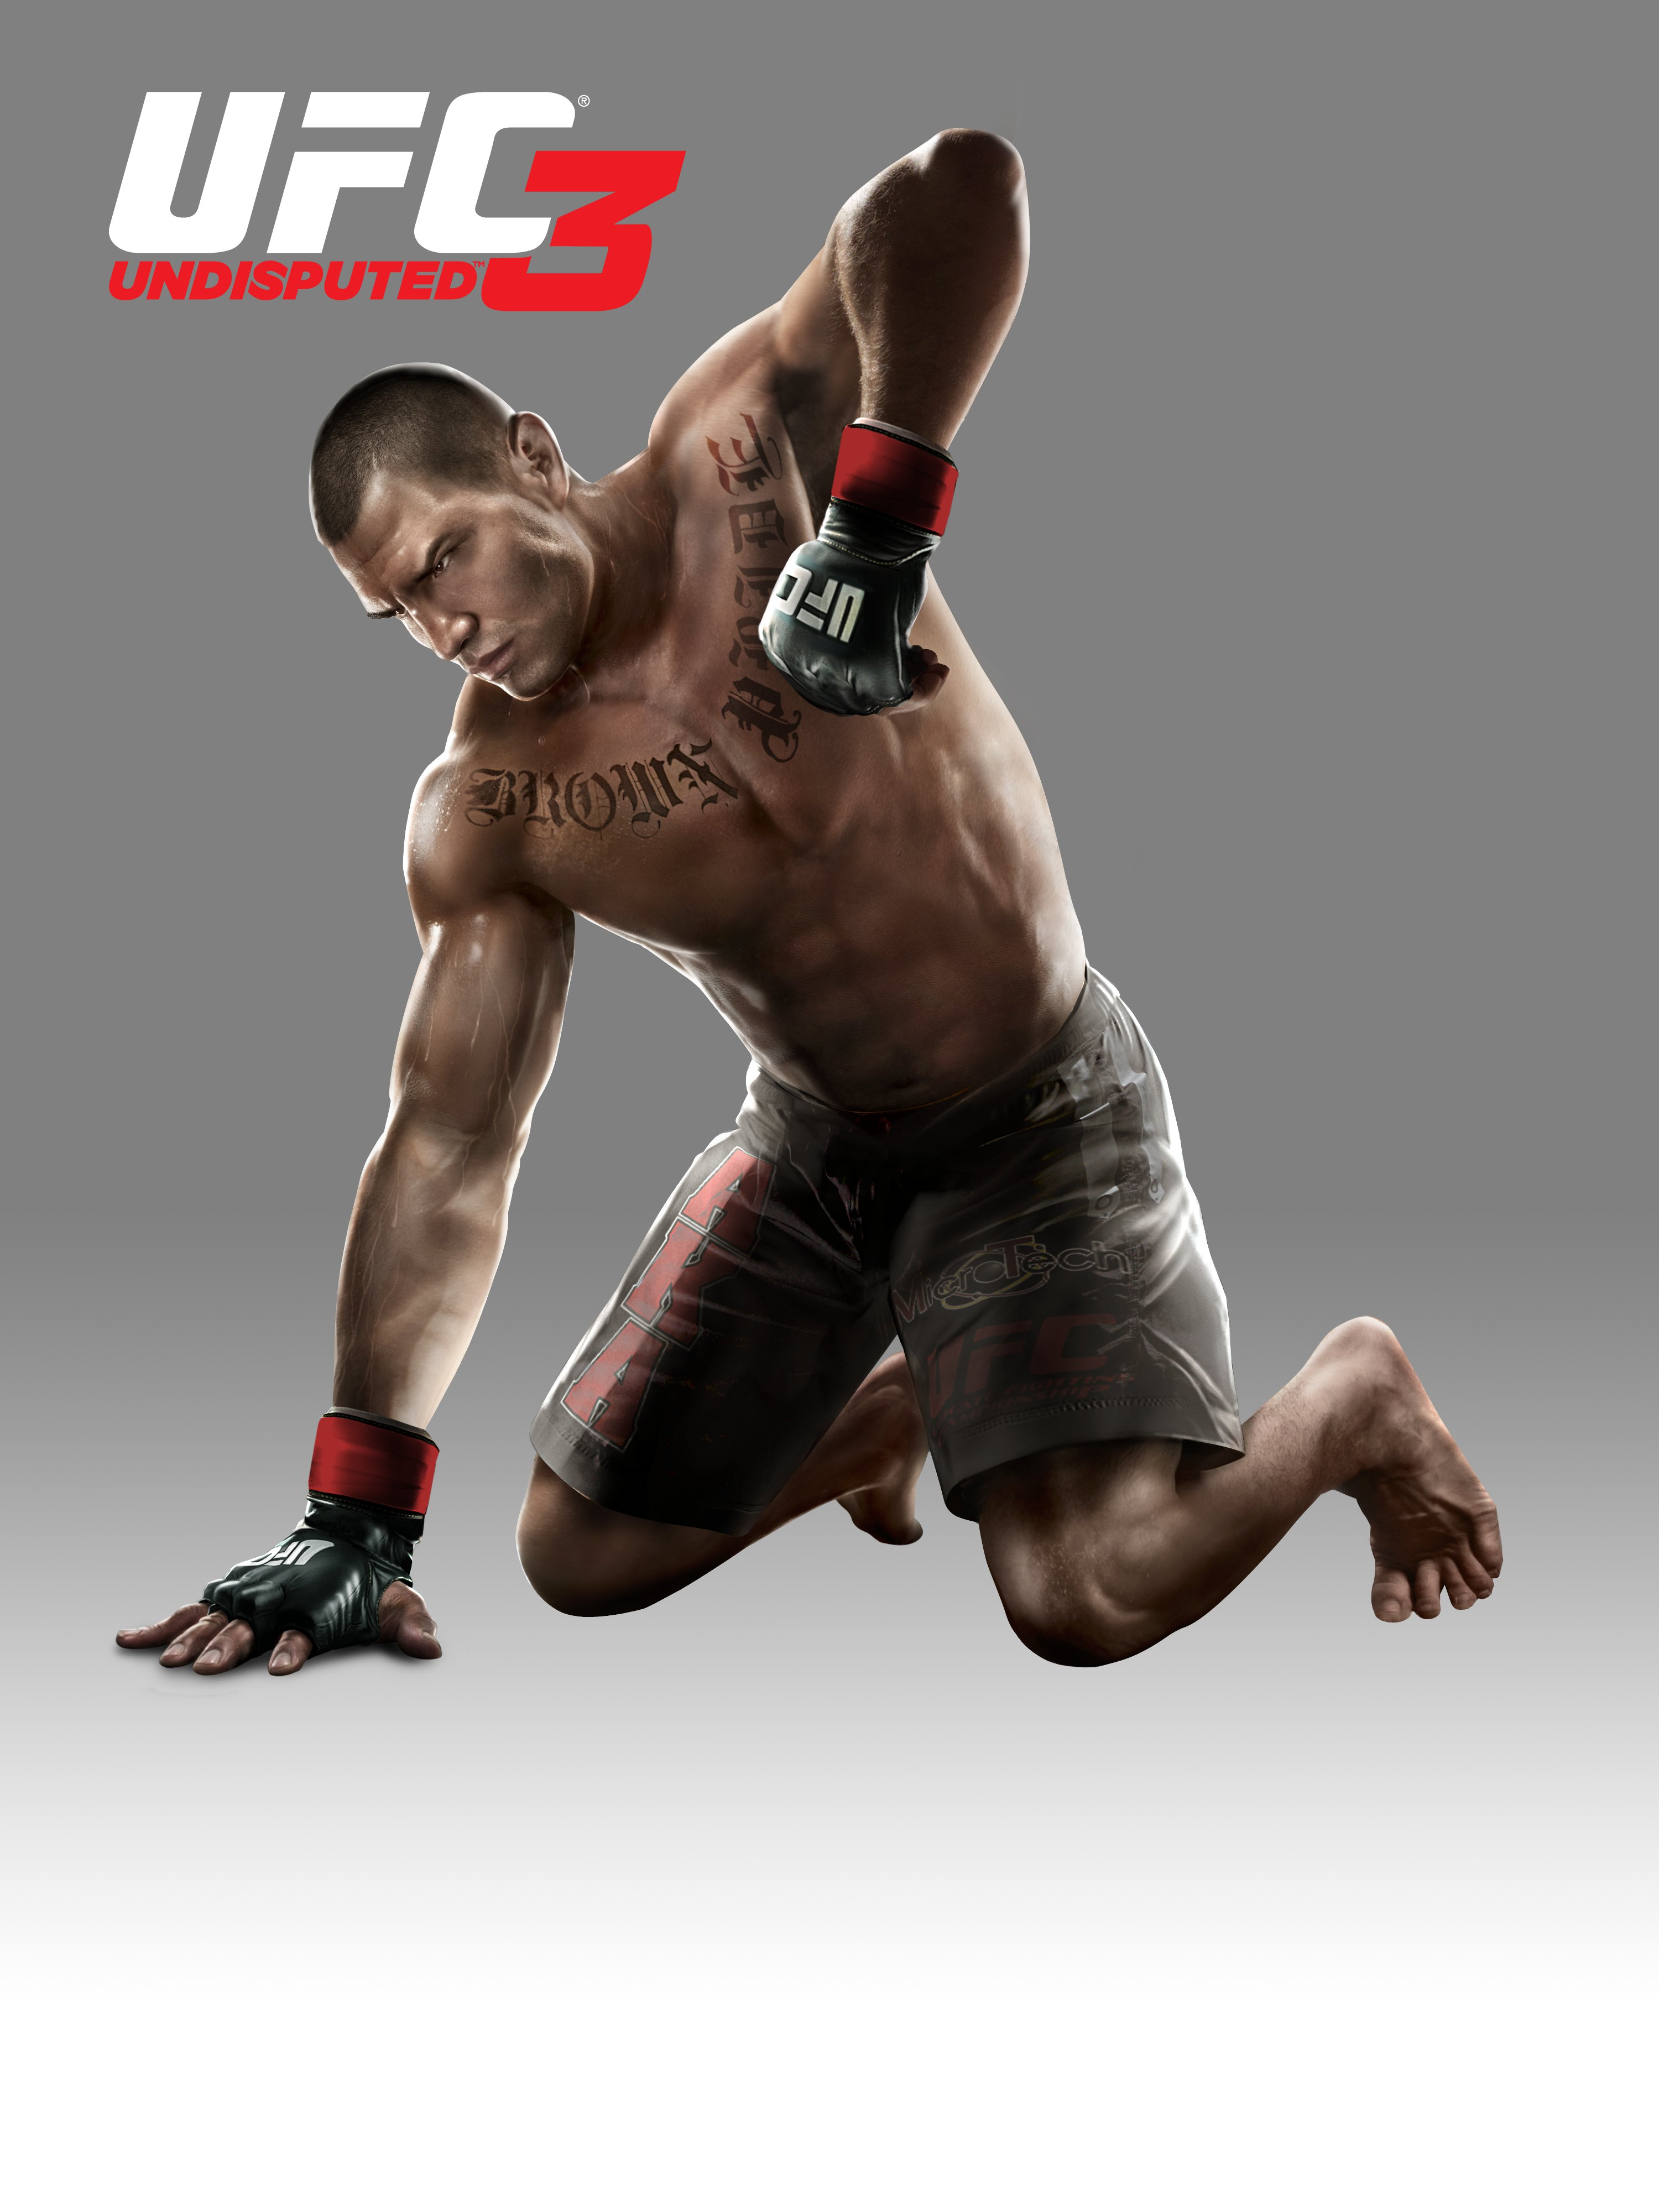 vote cain velasquez for ufc undisputed cover athlete